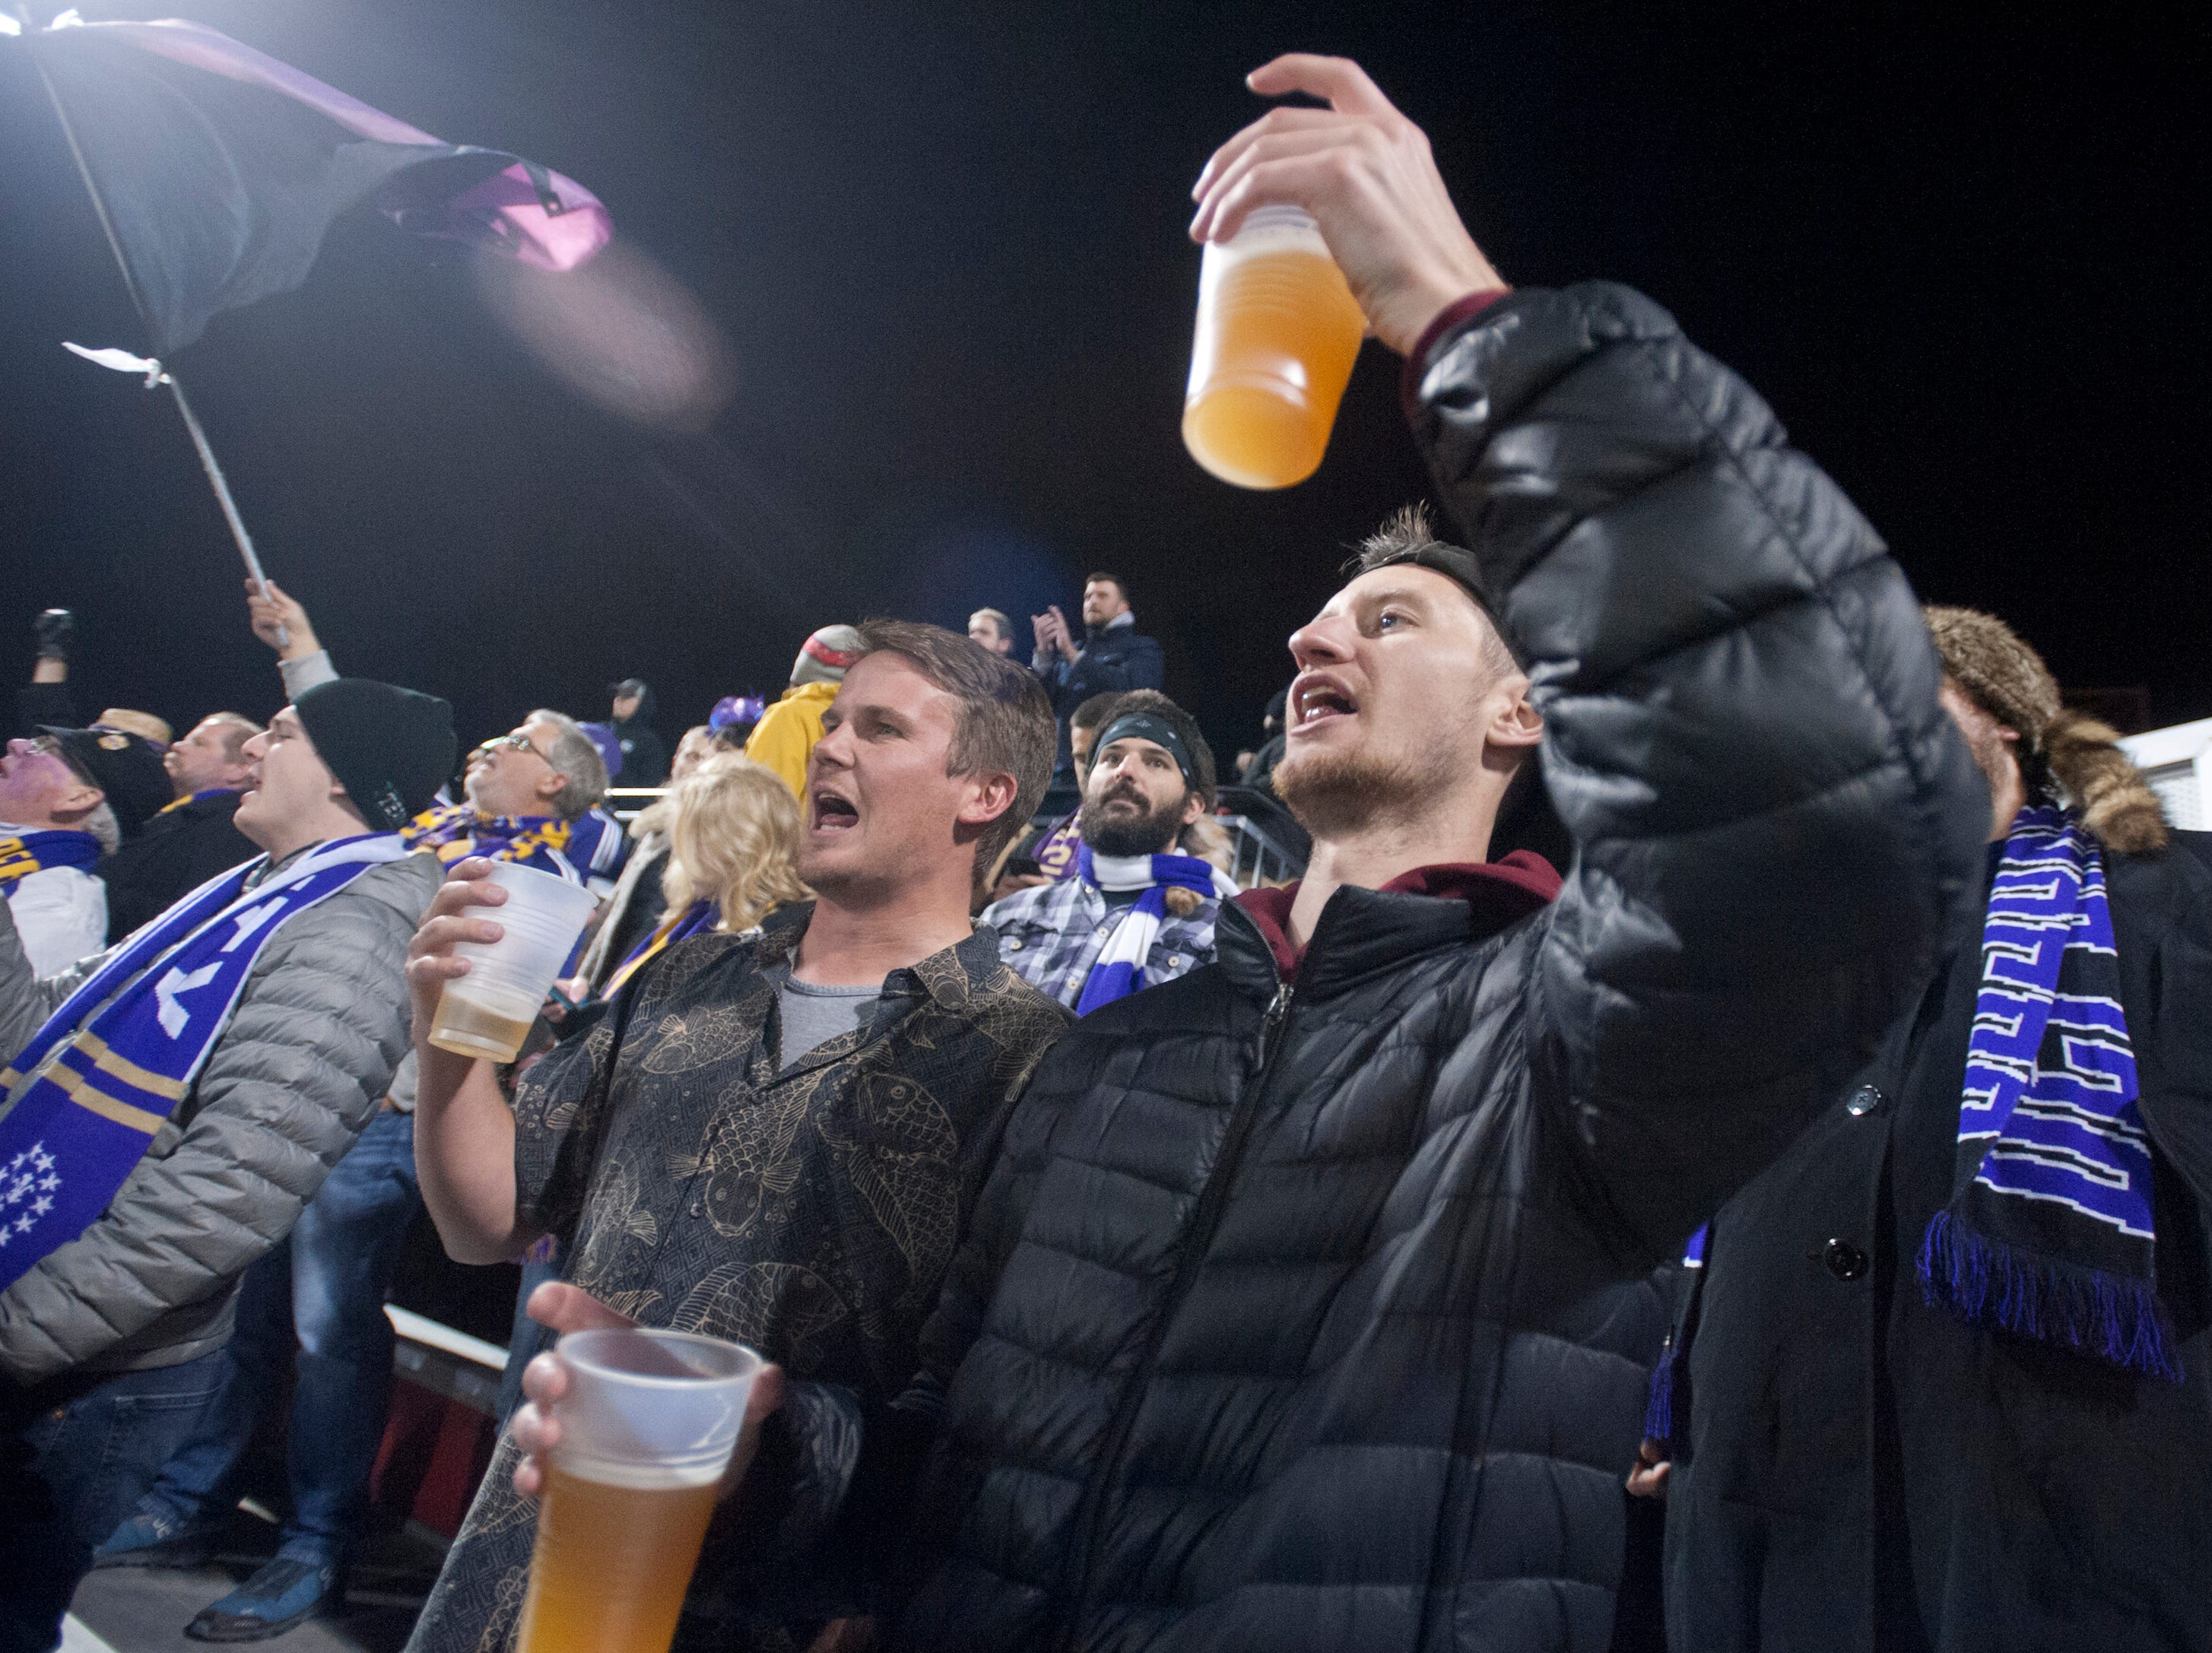 Kyle Barrett, left, and Matt Kabbes, right, of Shively, raise their beers in support of the Louisville City FC as it takes on the Phoenix Rising FC for the 2018 USL Cup.November 08, 2018